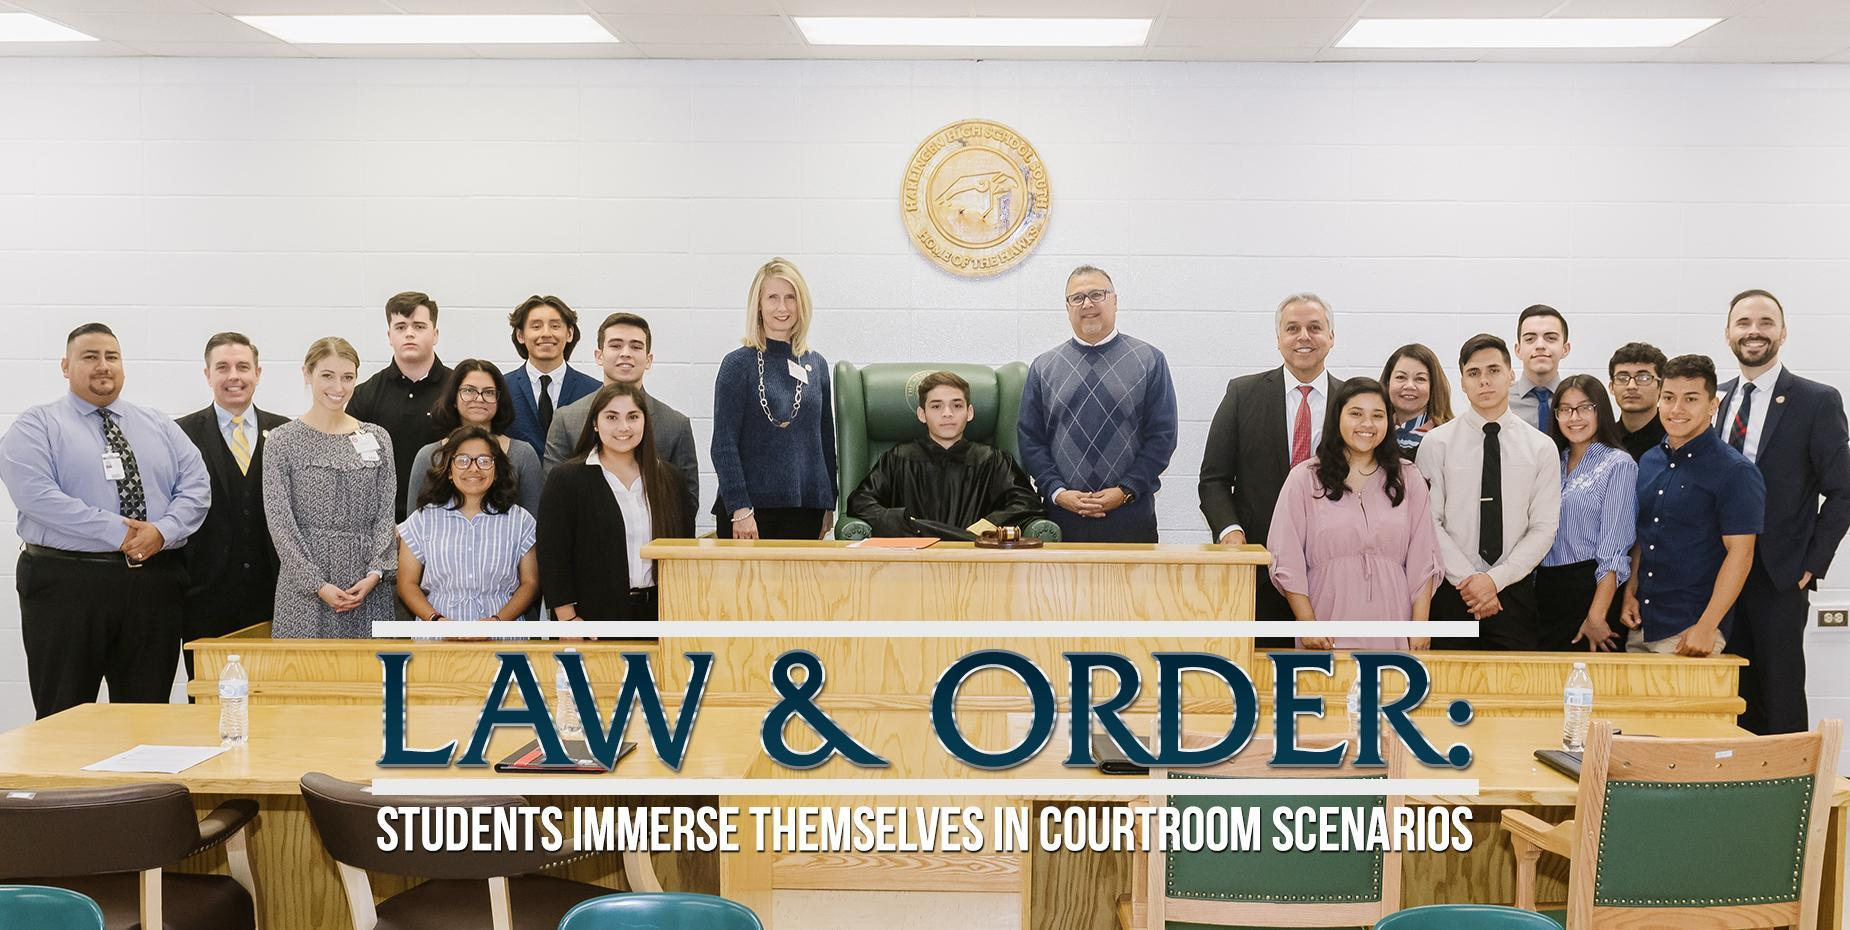 Law and Order: Students immerse themselves in courtroom scenarios